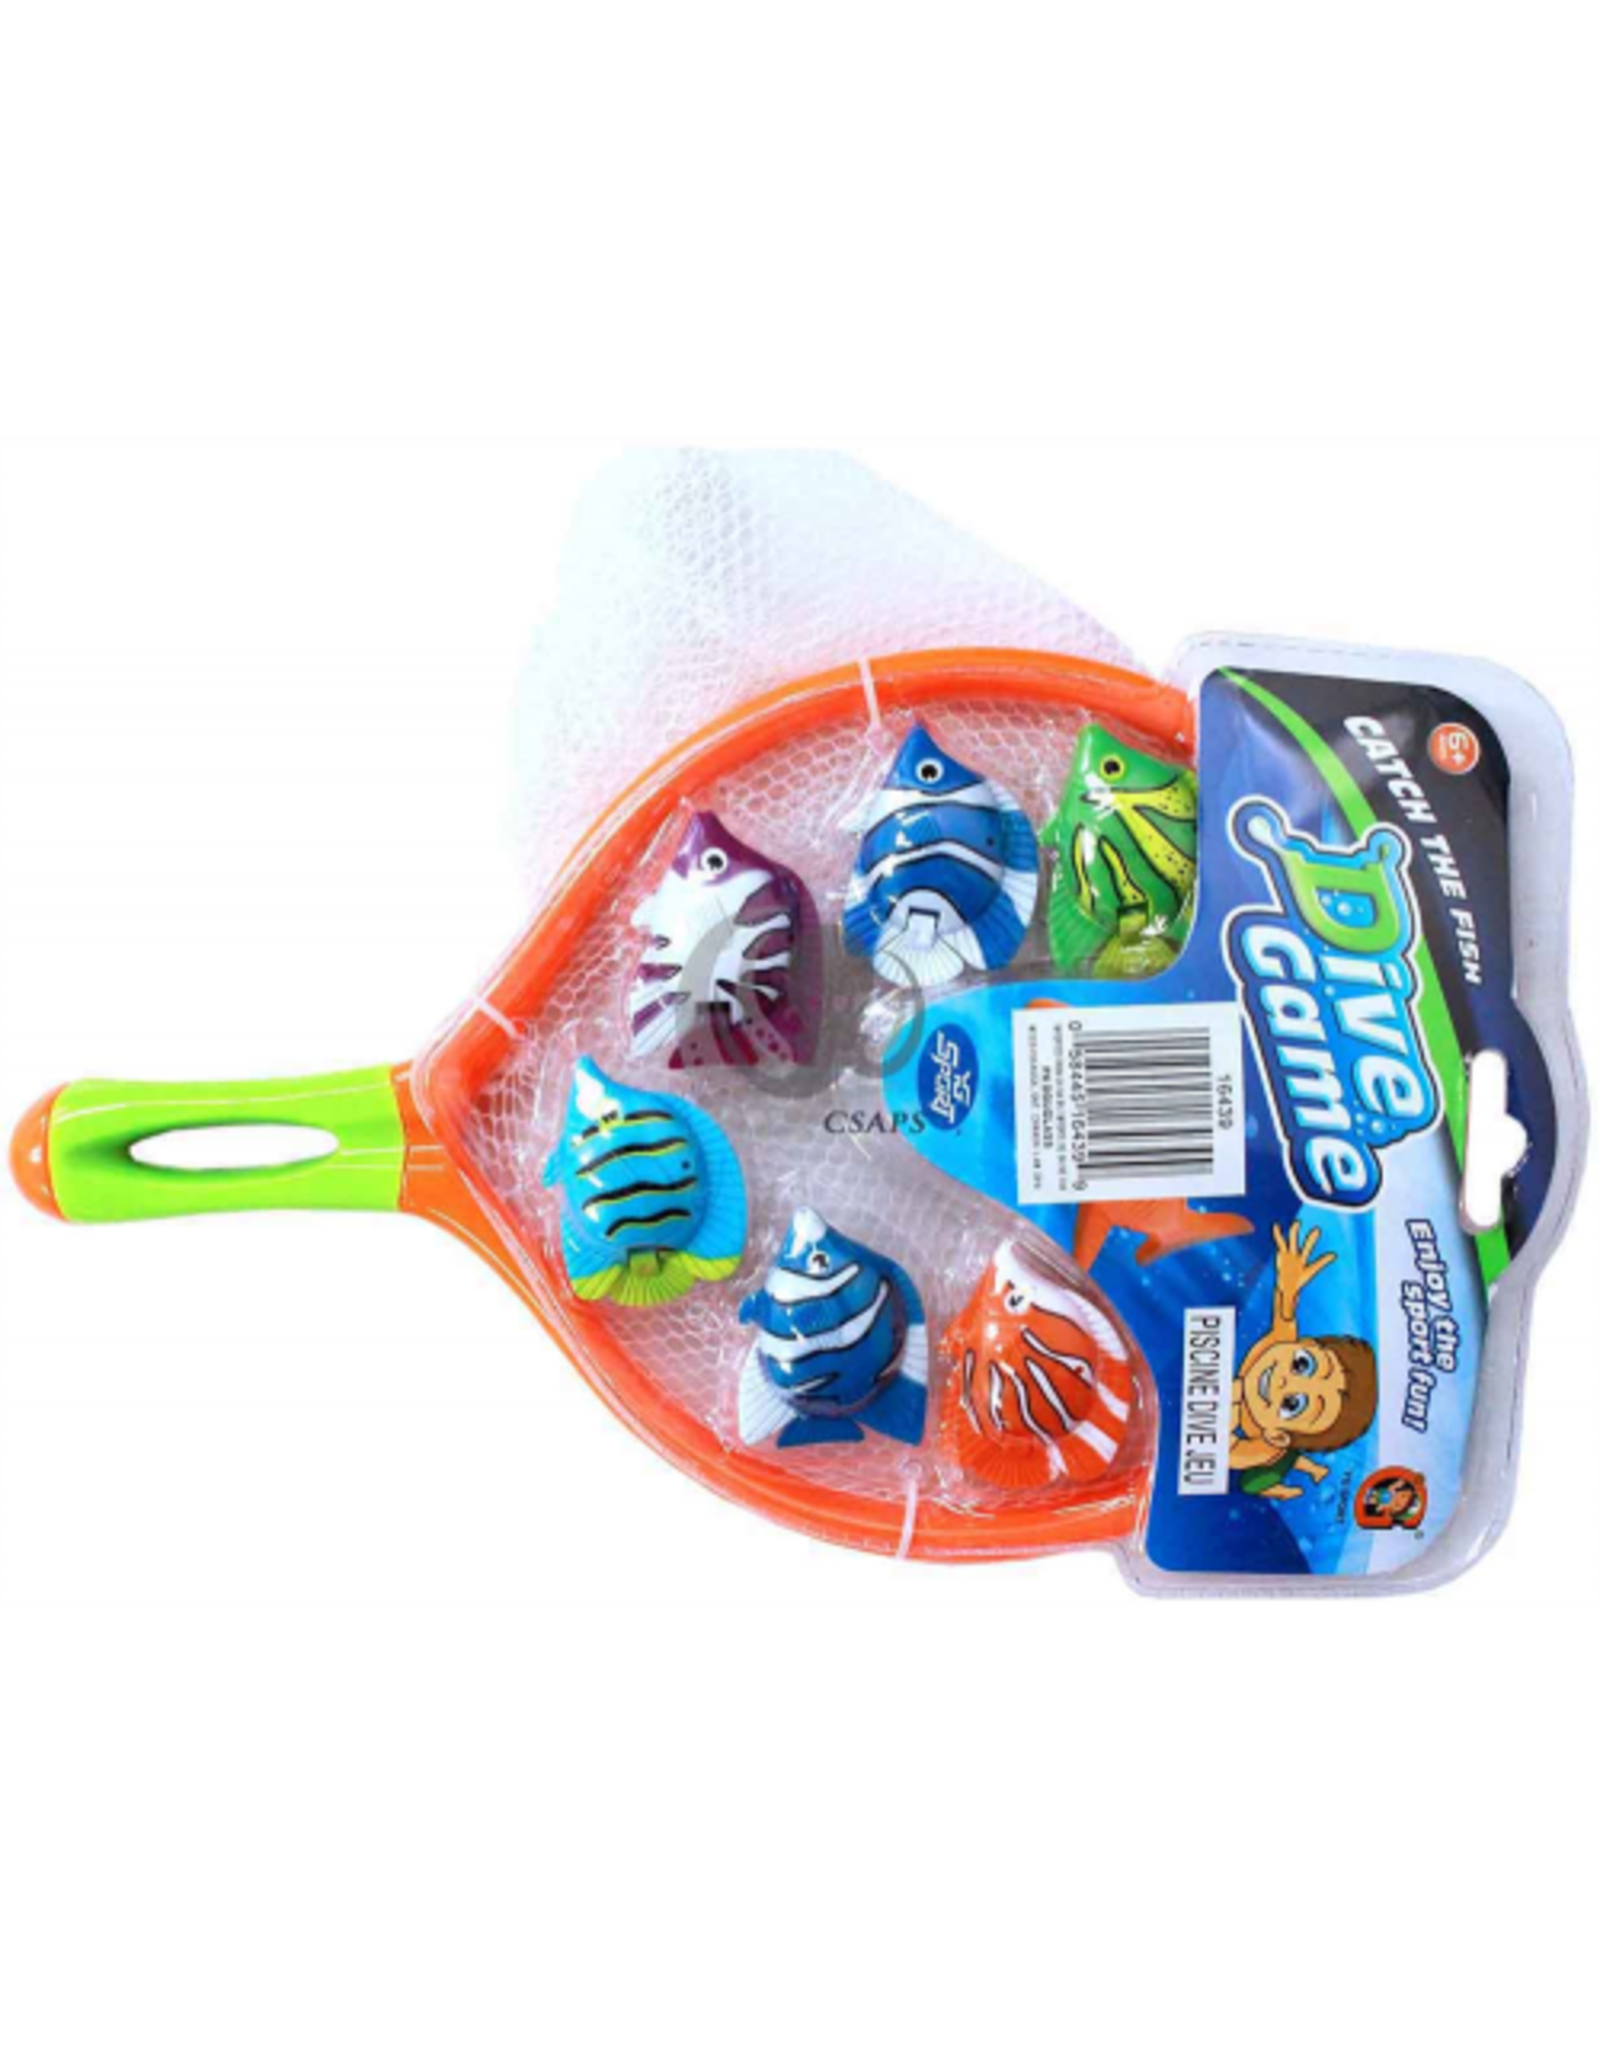 YG SPORT DIVE GAME , DIVE FISH WITH NET